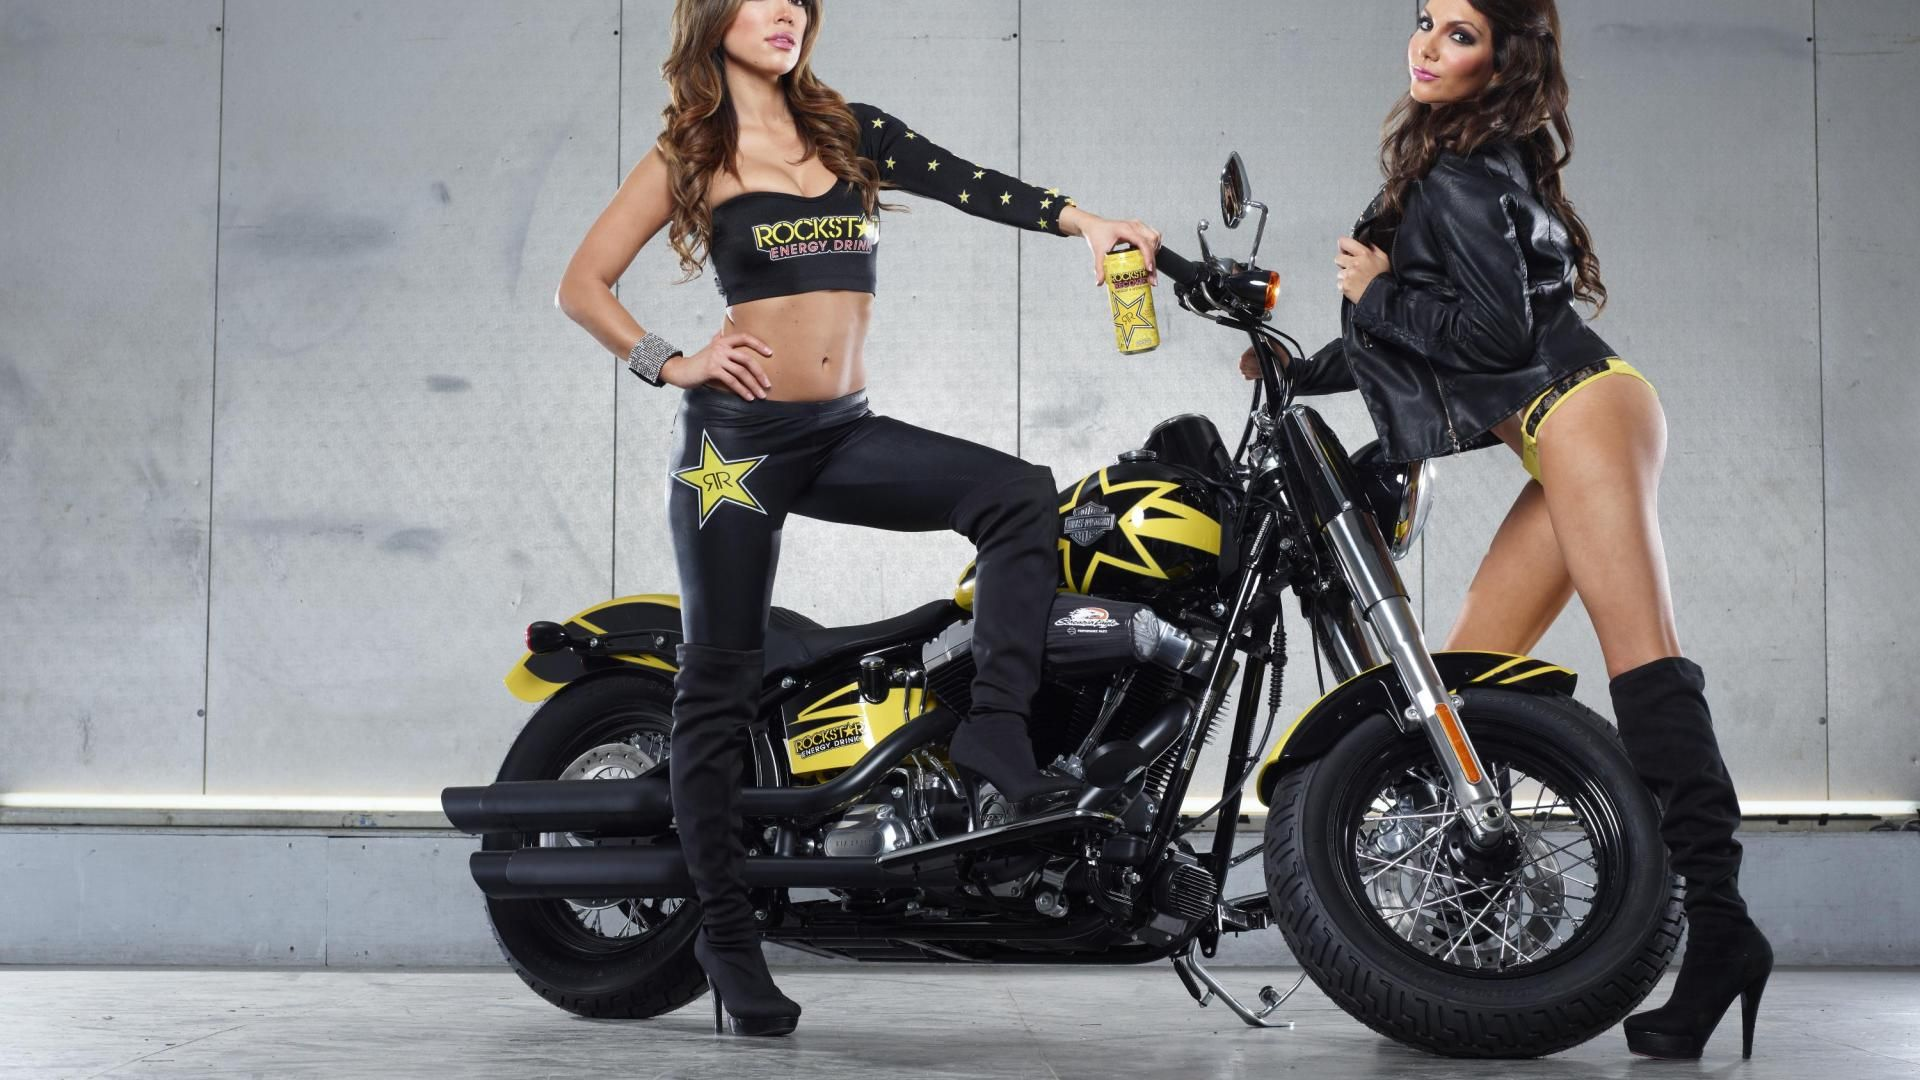 Rockstar harley davidson partner for the hd110 anniversary rockstar harley davidson partner for the hd110 anniversary rockstar currently available at sciox Image collections